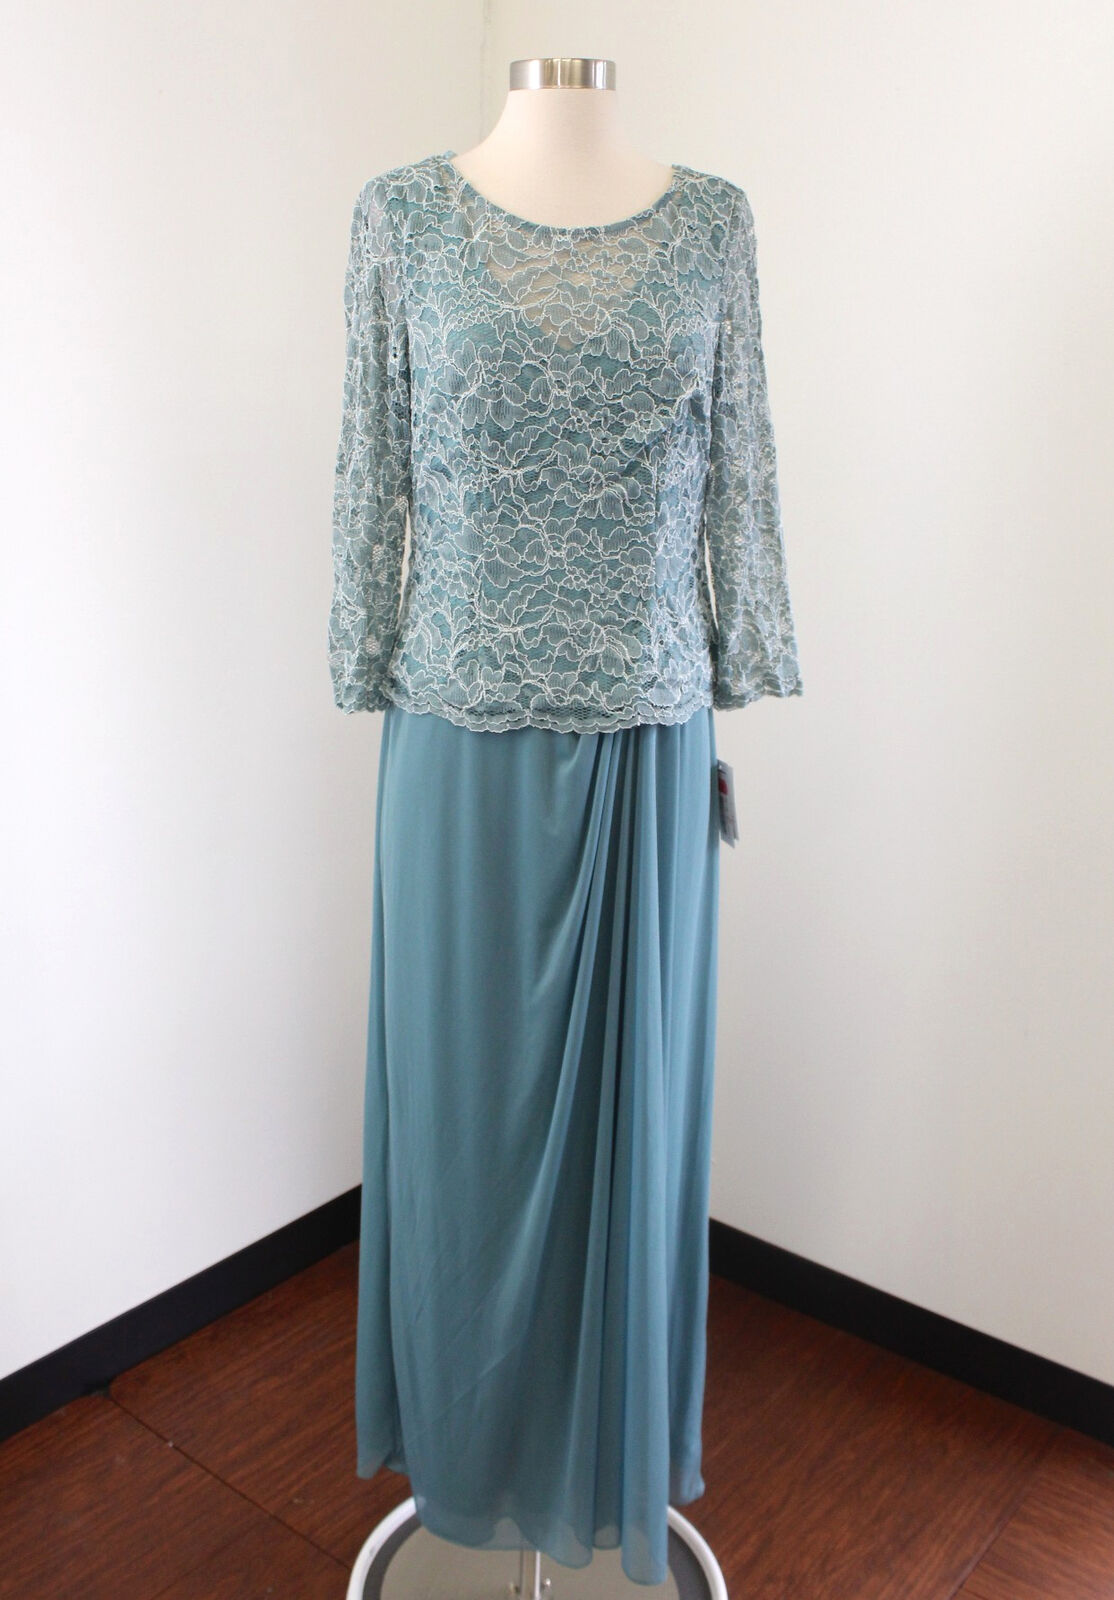 NWT Alex Evenings Teal bluee Layered Lace Draped Evening Dress Formal Size 10